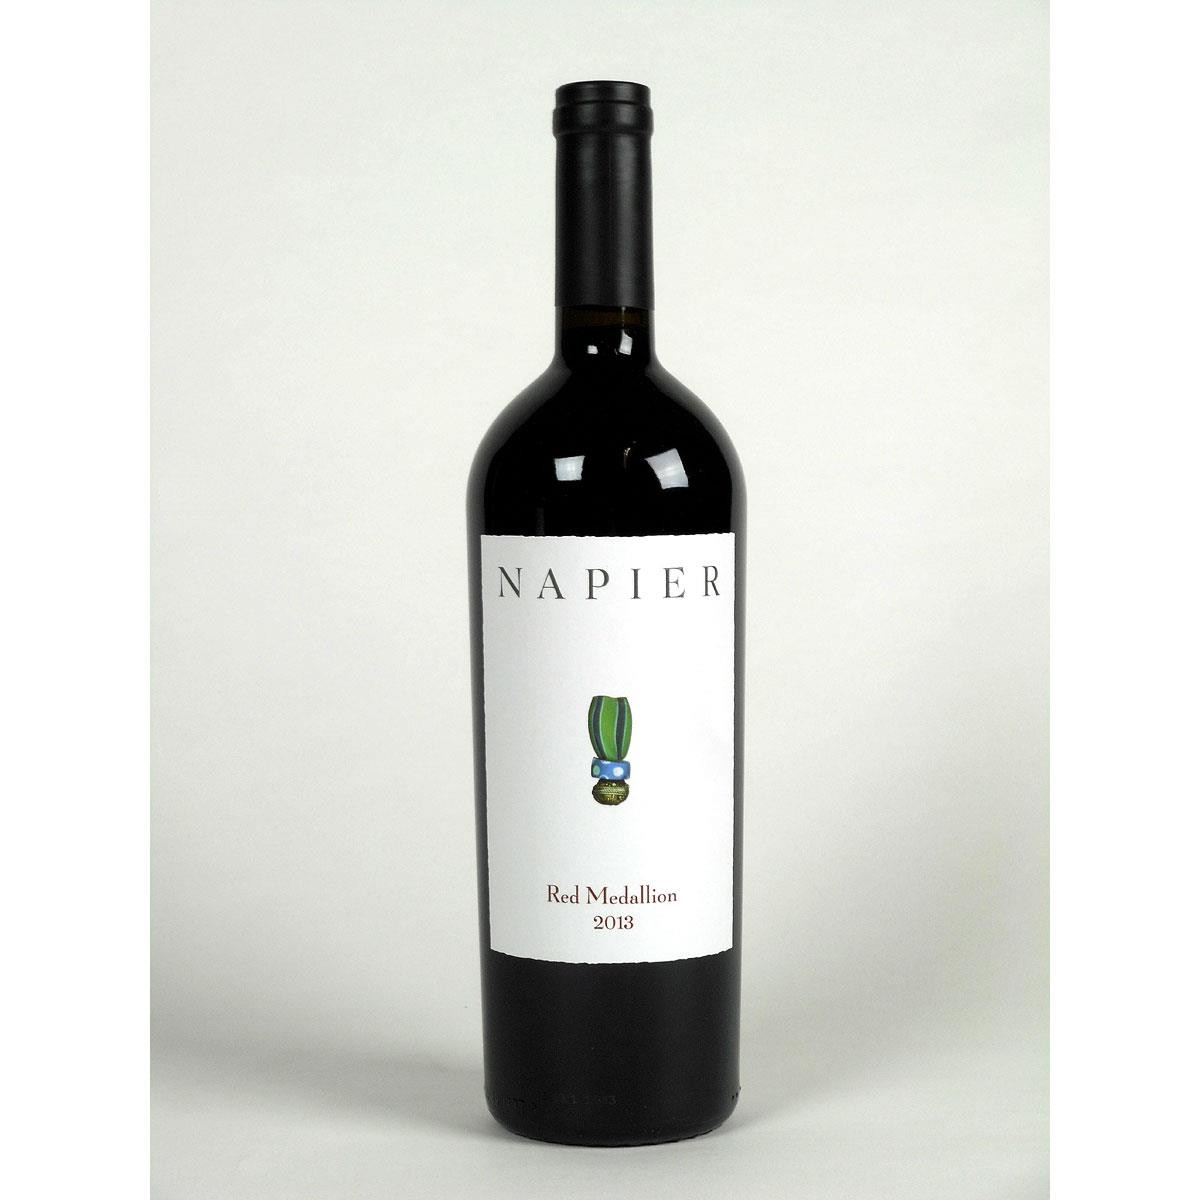 Napier Winery: 'Red Medallion' 2013 - Bottle